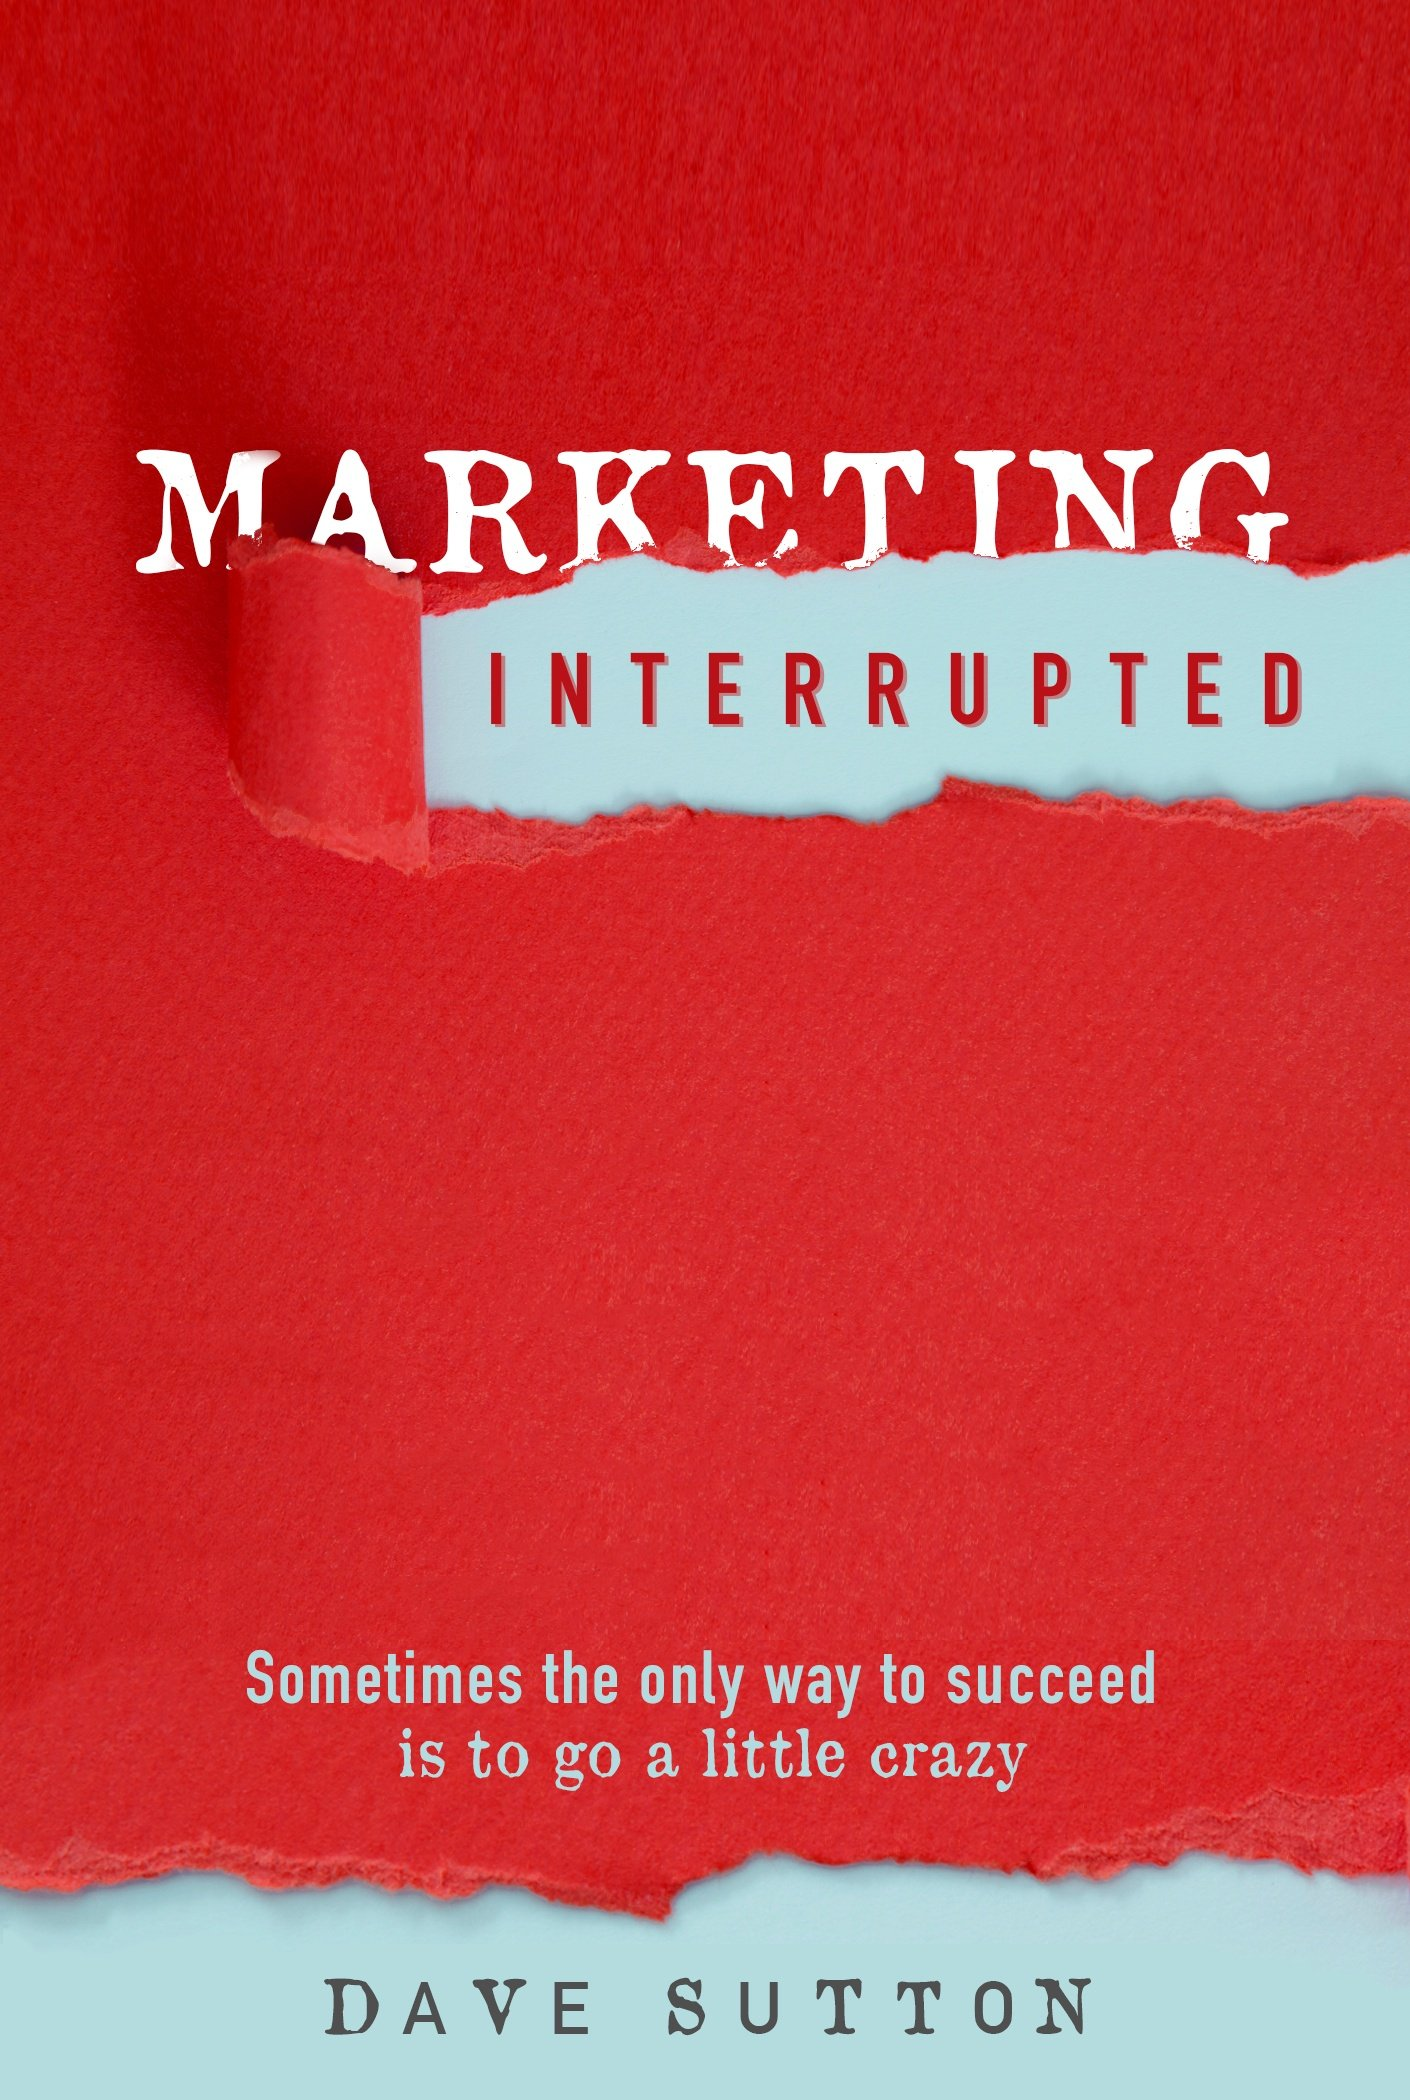 Book Cover Design for 'Marketing Interrupted' by Dave Sutton